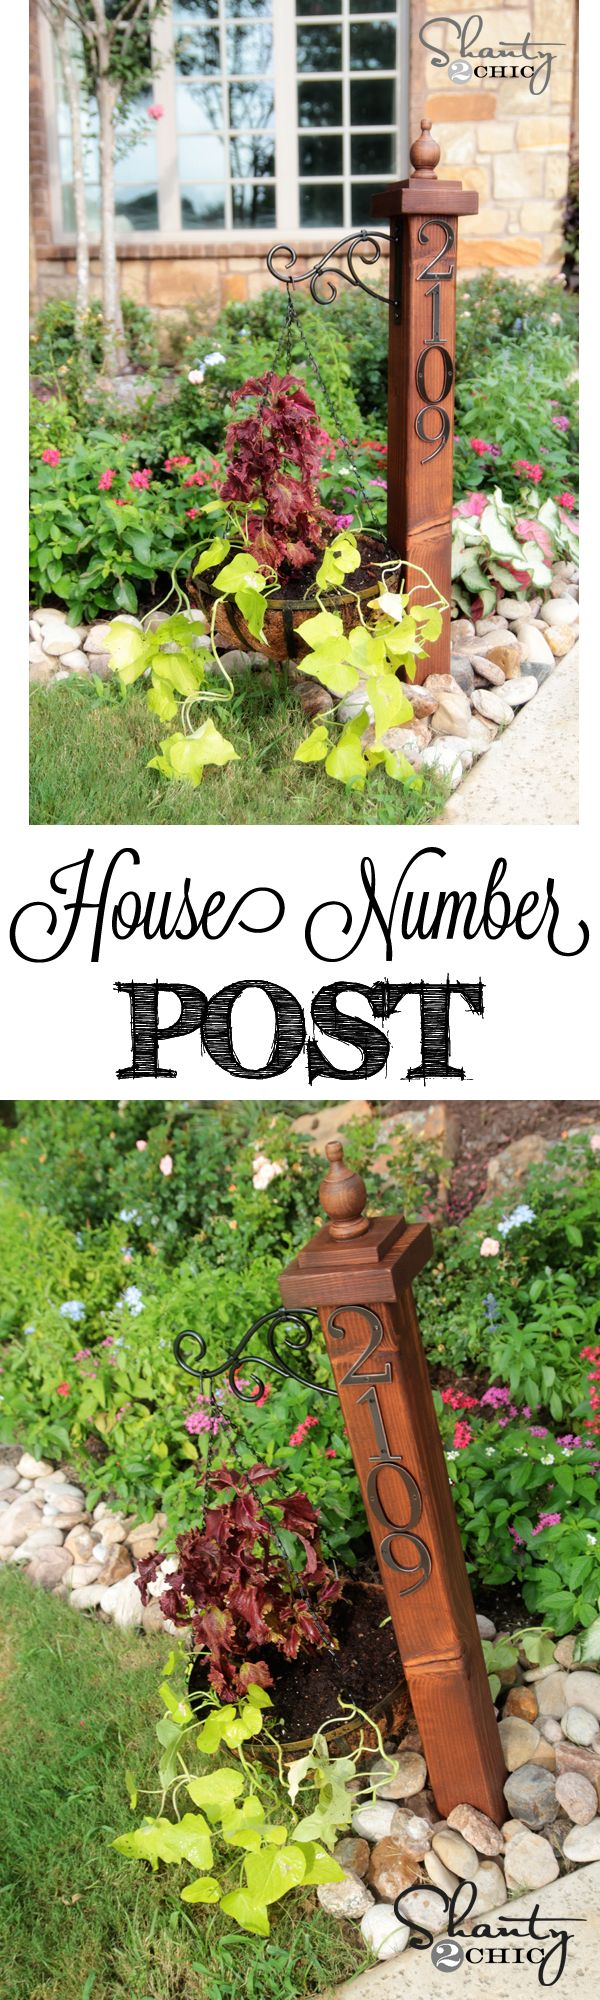 Cutest way to display address numbers EVER! So easy too!! Doing this for my house numbers!